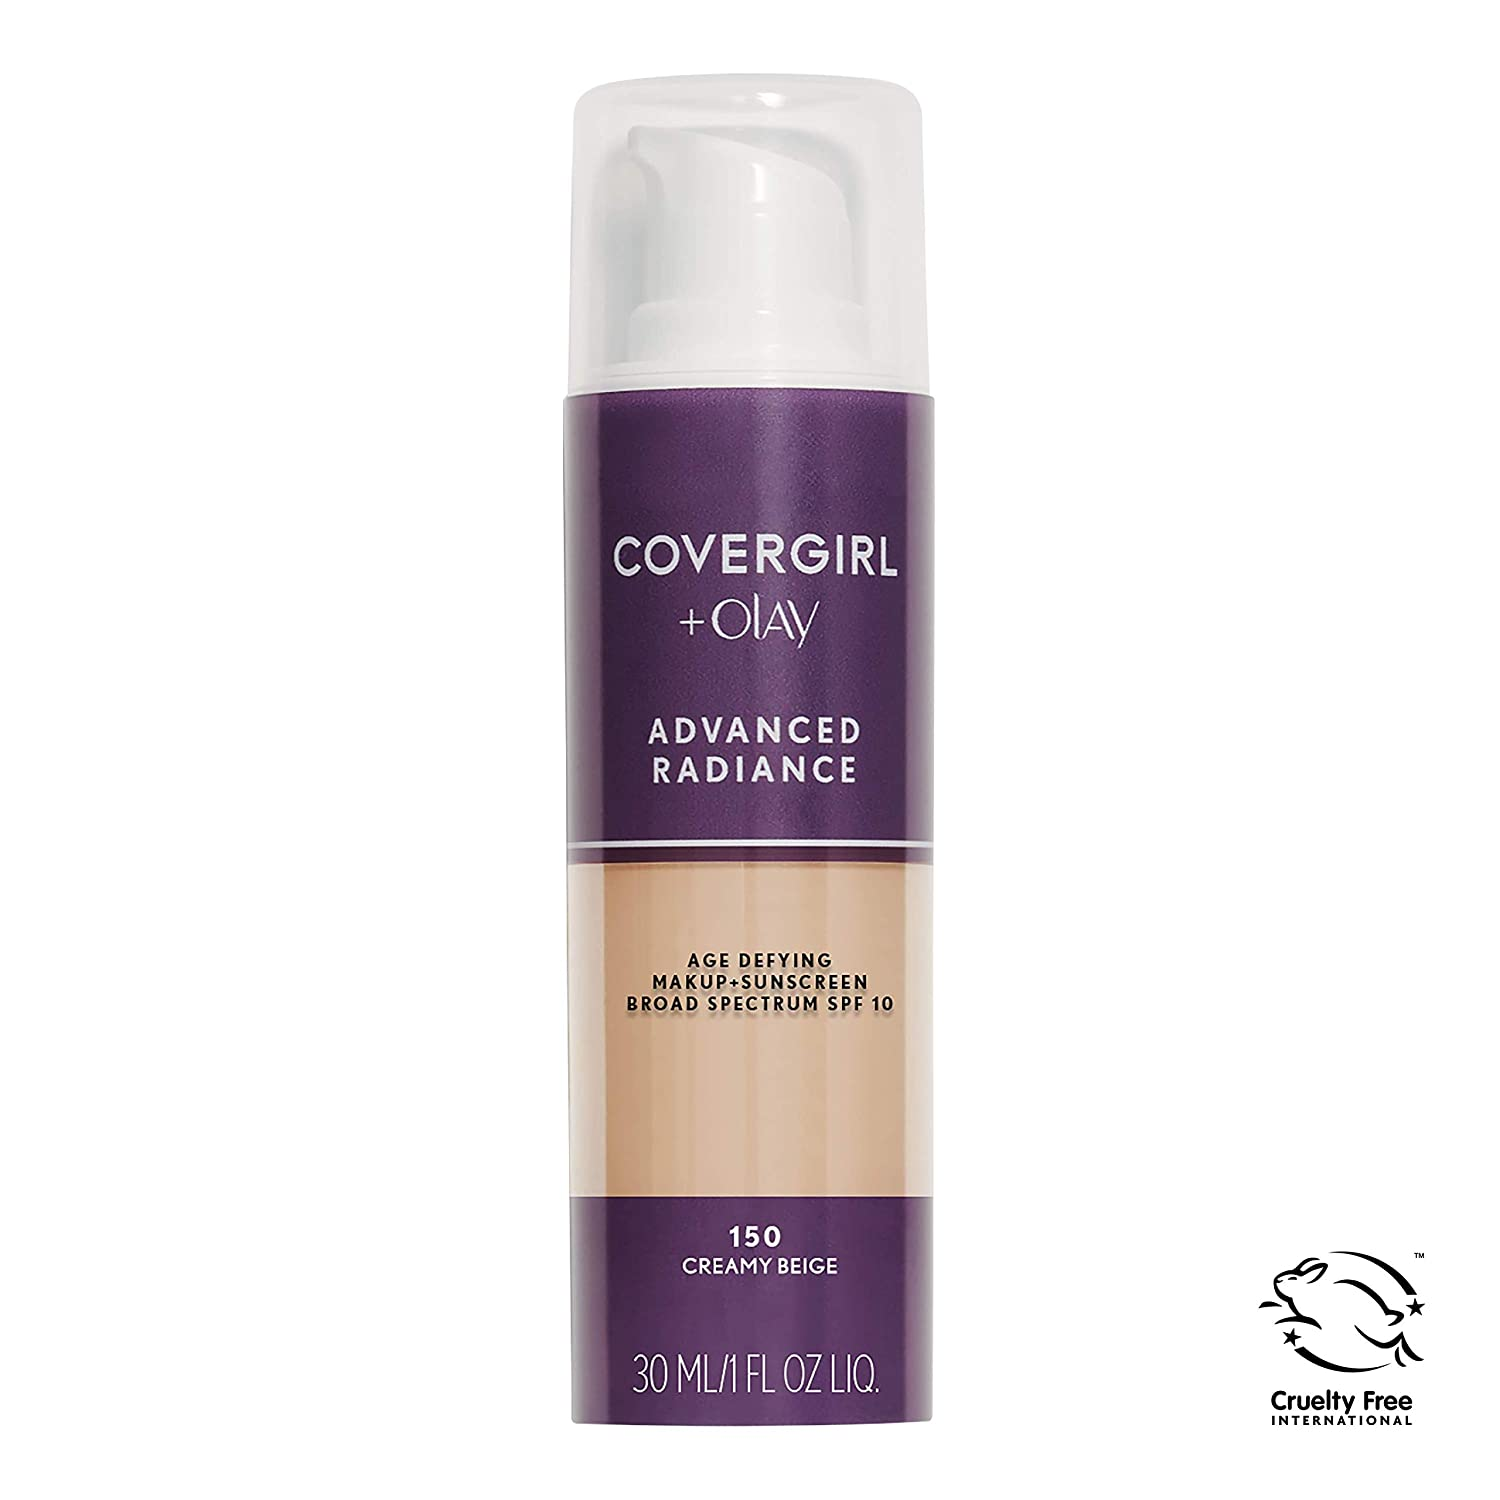 COVERGIRL Advanced Radiance Age Defying Foundation Makeup Creamy Beige, 1 oz